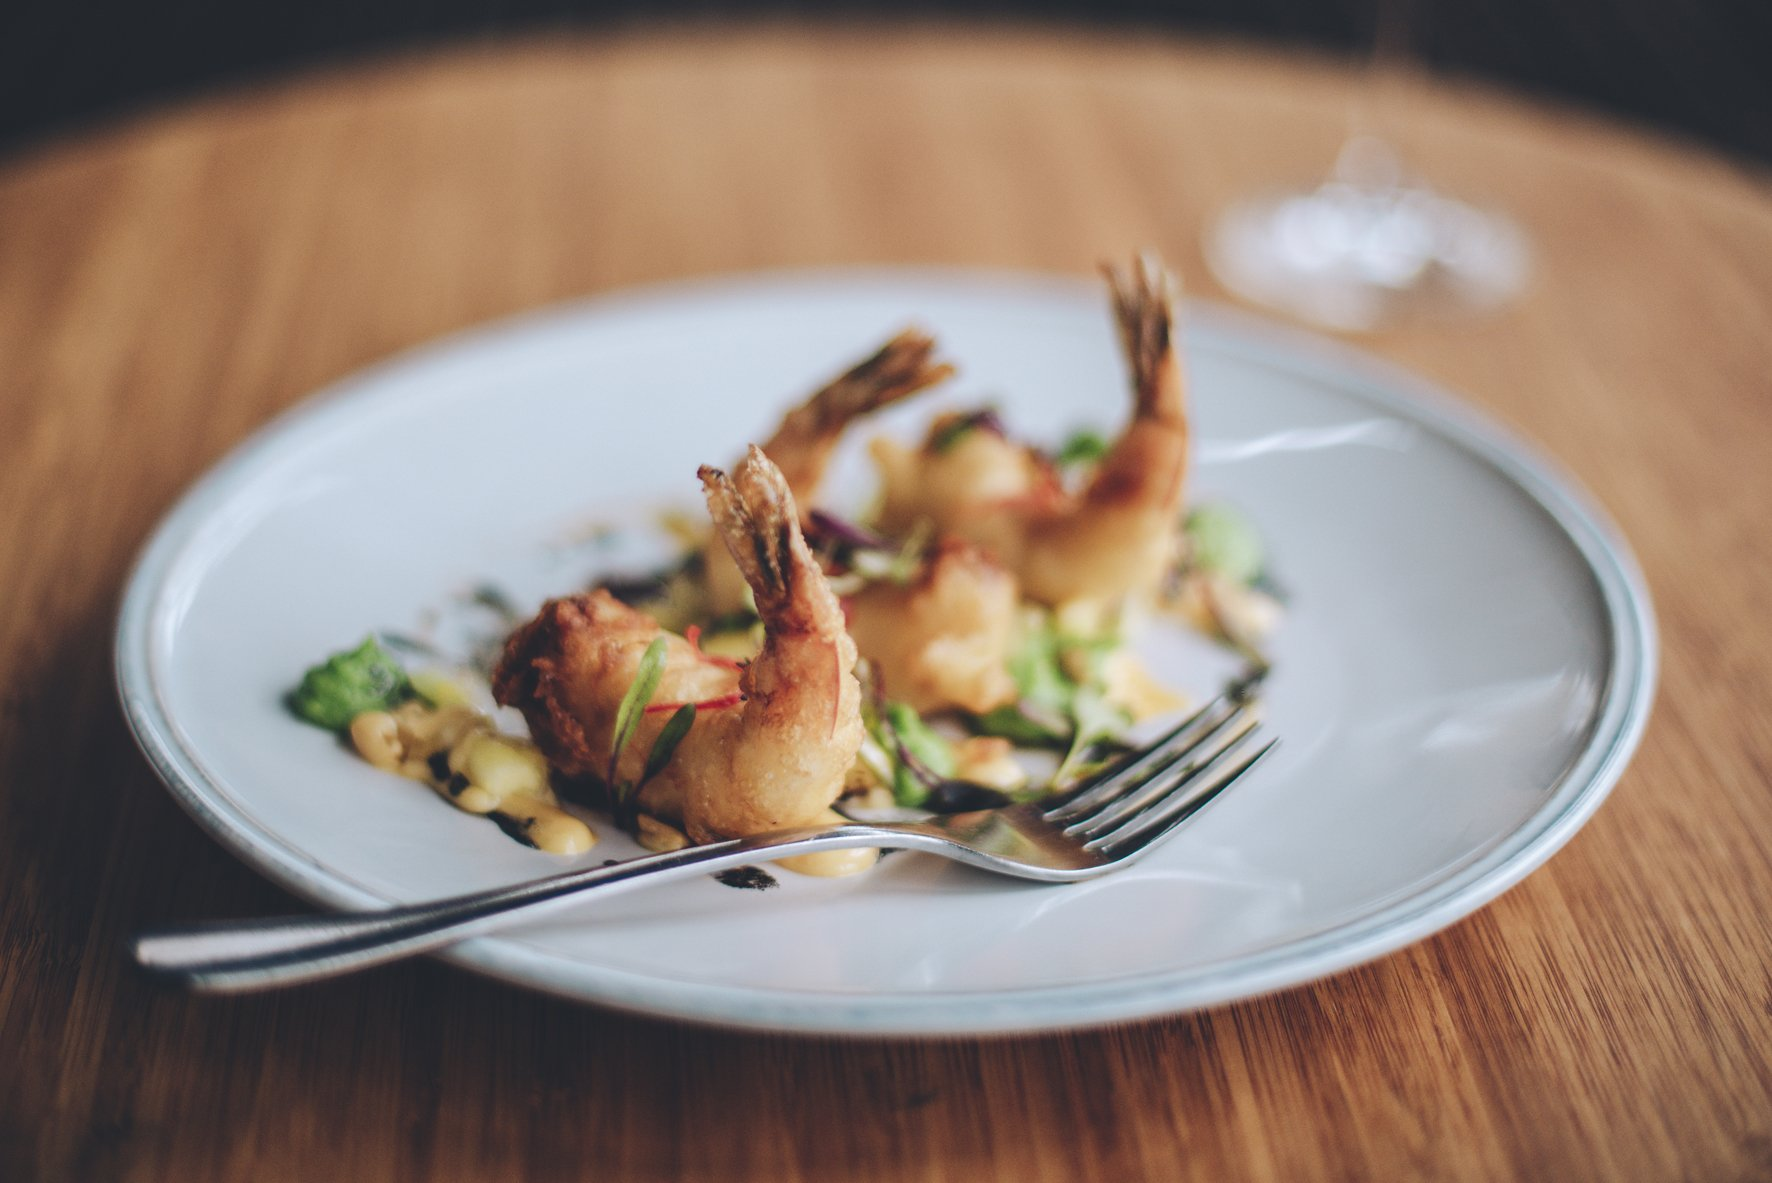 Prawns, Tryn, lunch, Sonia Cabano blog eatdrinkcapetown